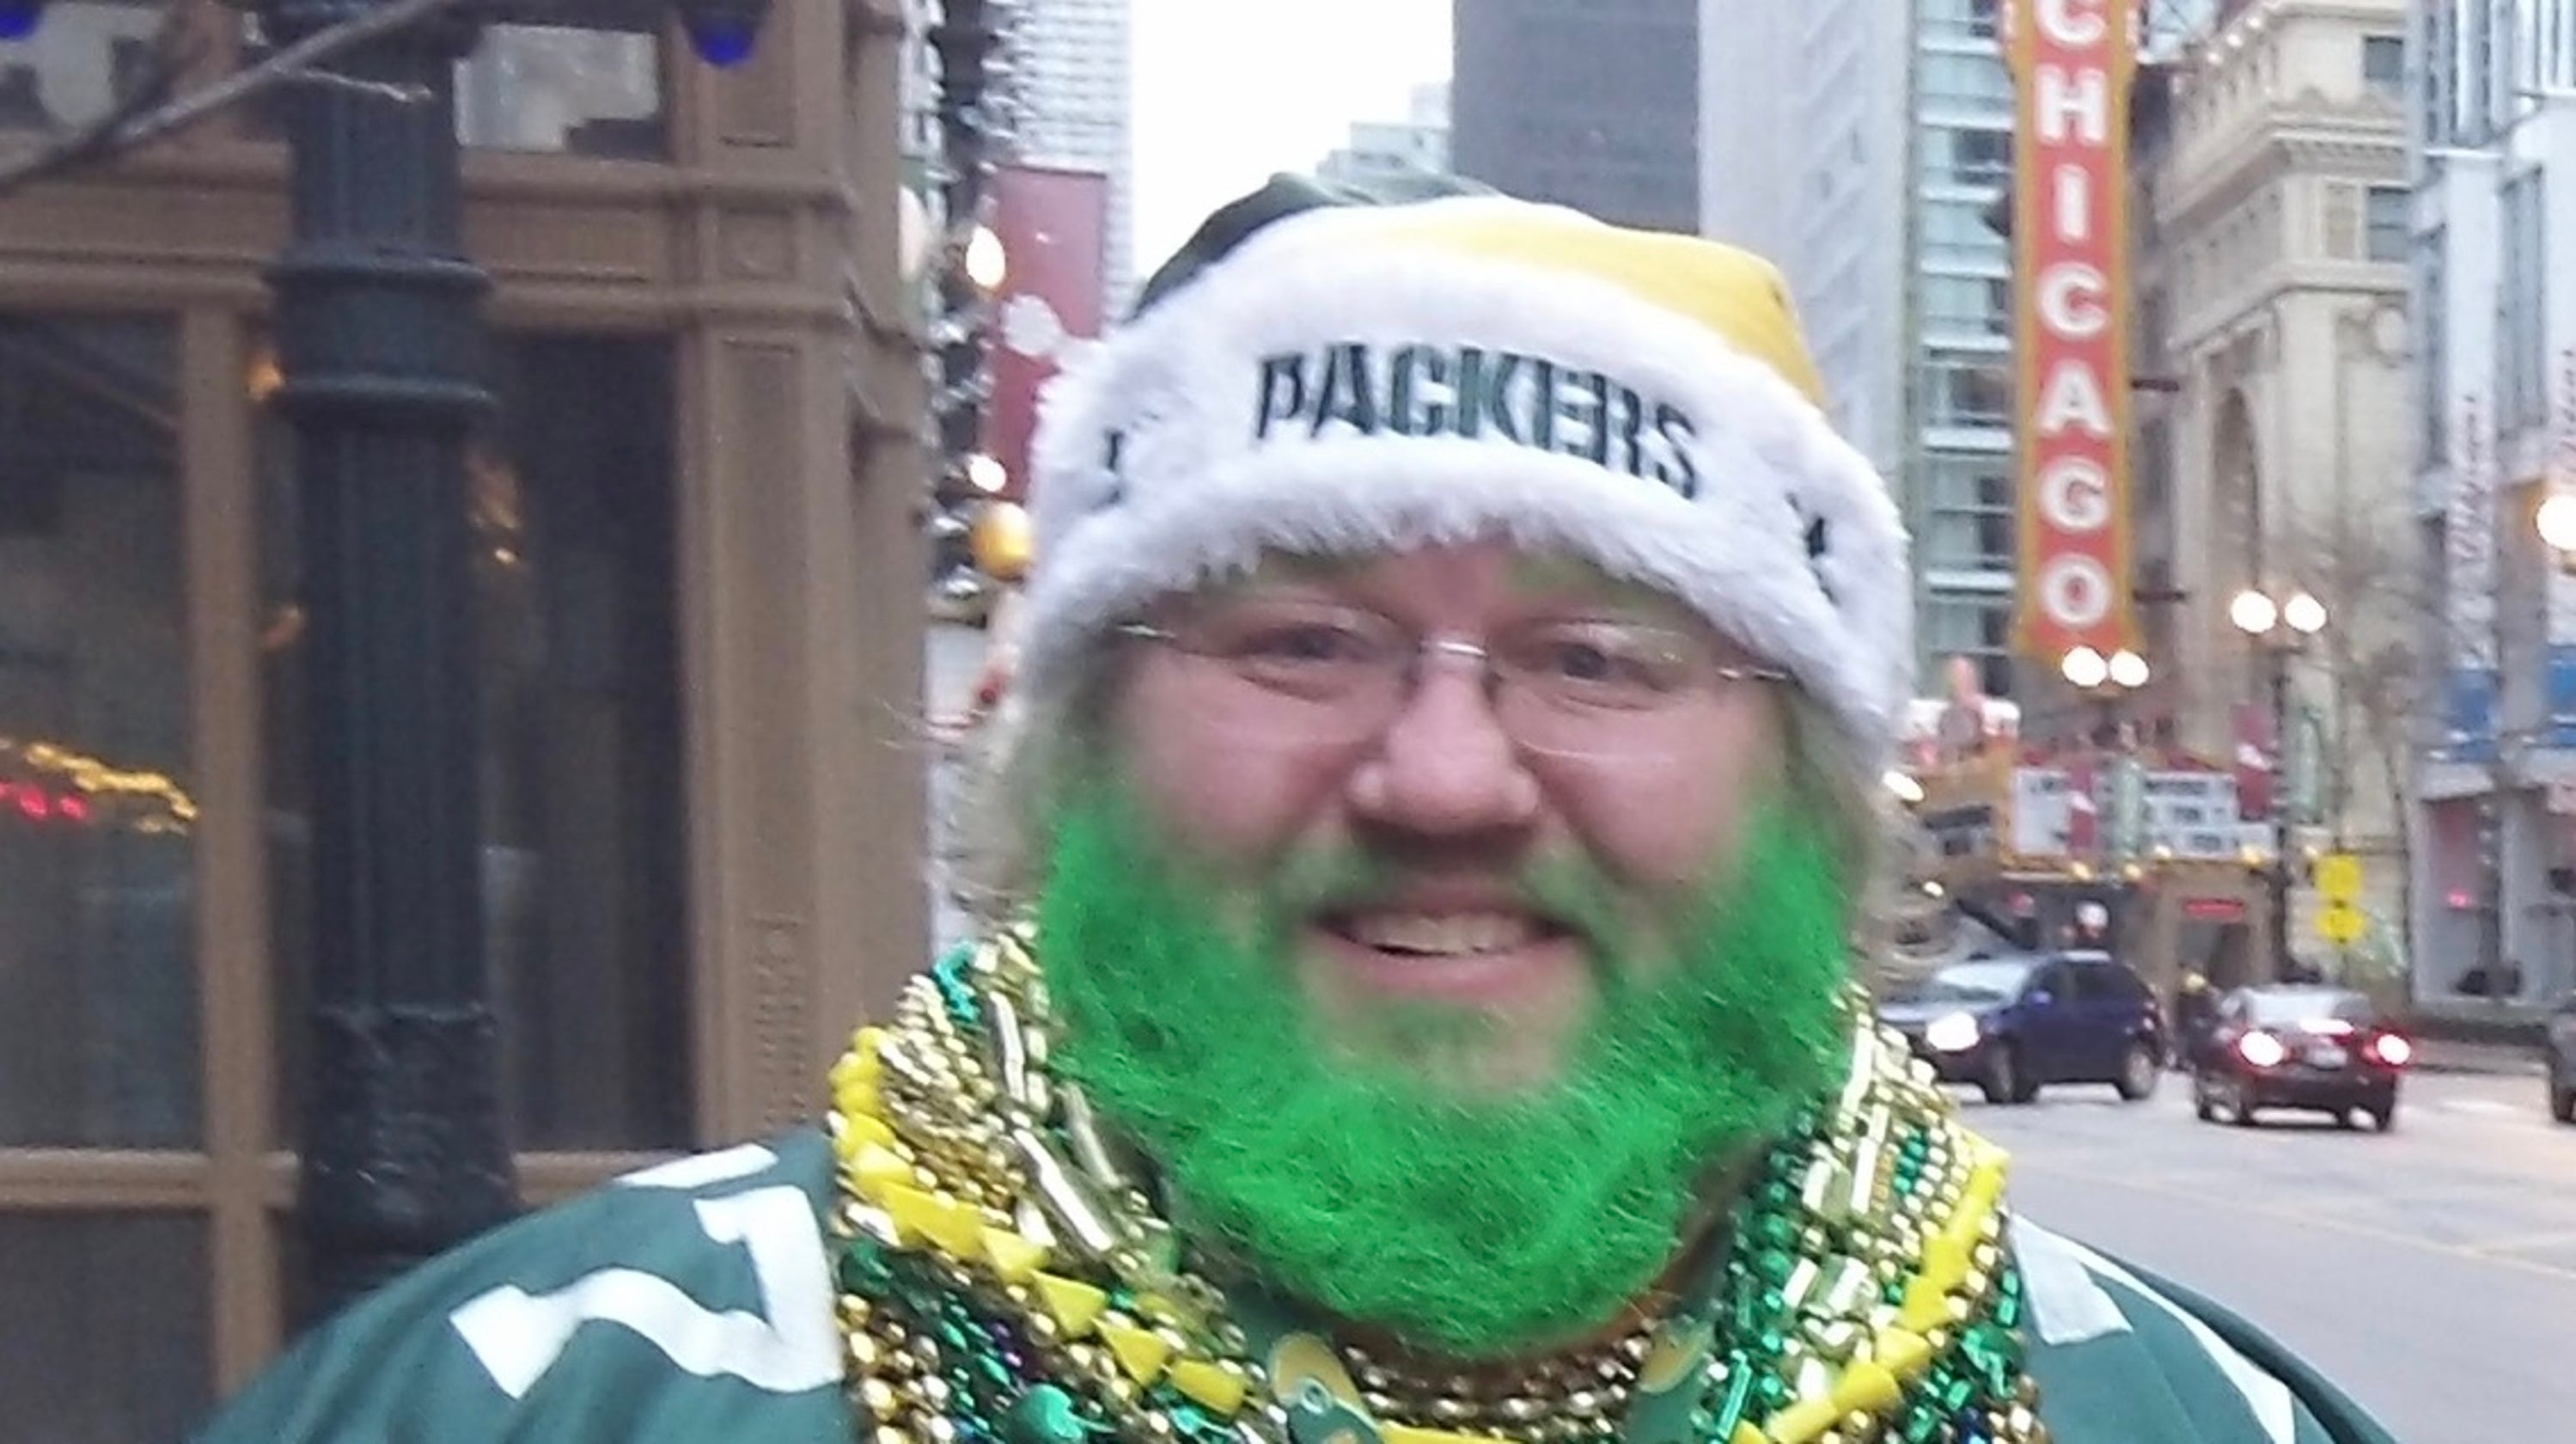 Packers fan asks court to block Bears from prohibiting garb at next game 237ba7065